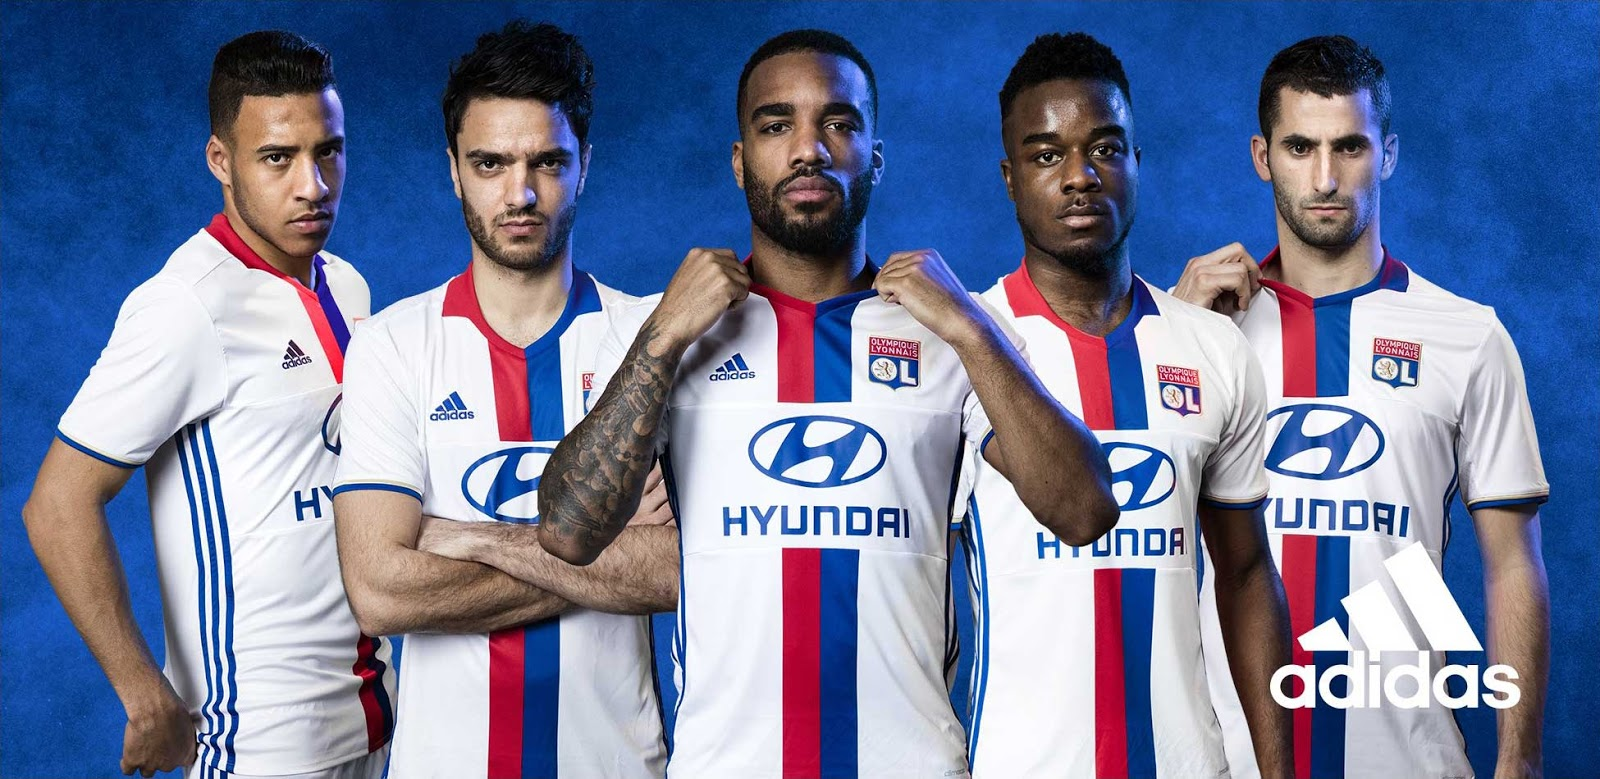 Lyon's players seeing how they fare in the new shirt. (Photo via  adidas )